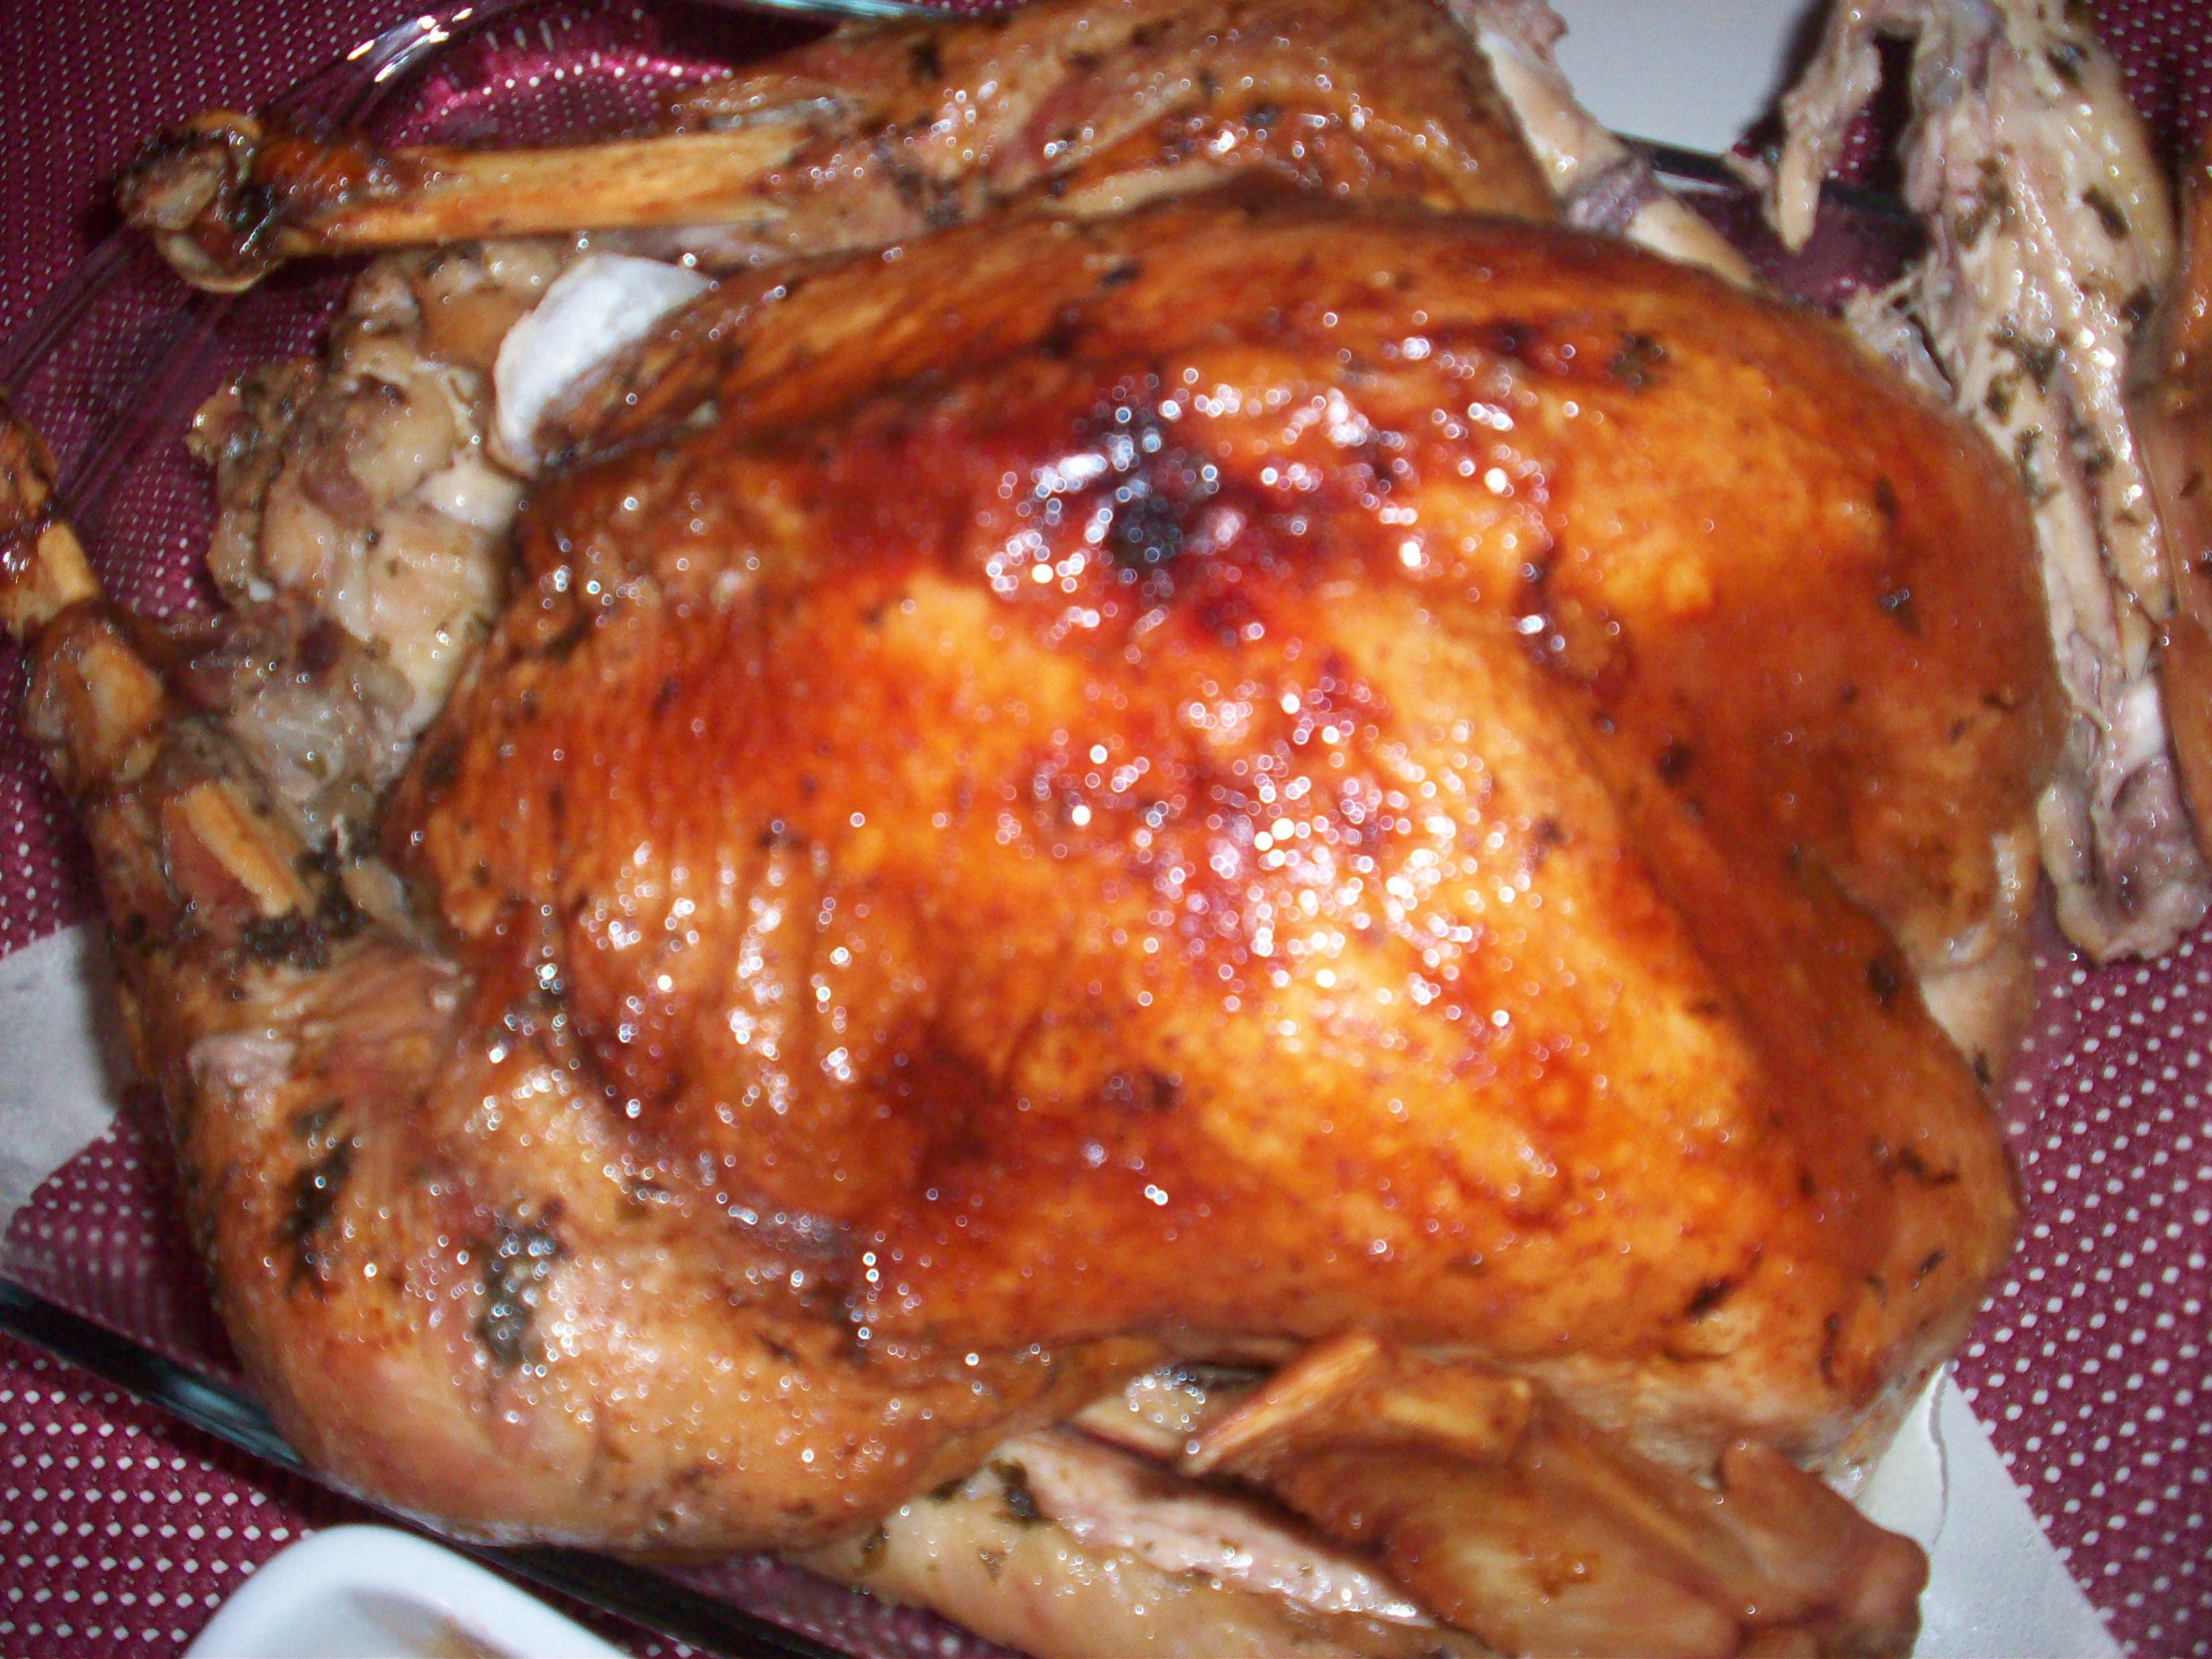 https://foodloader.net/cutie_2010-10-10_Roasted_Turkey.jpg